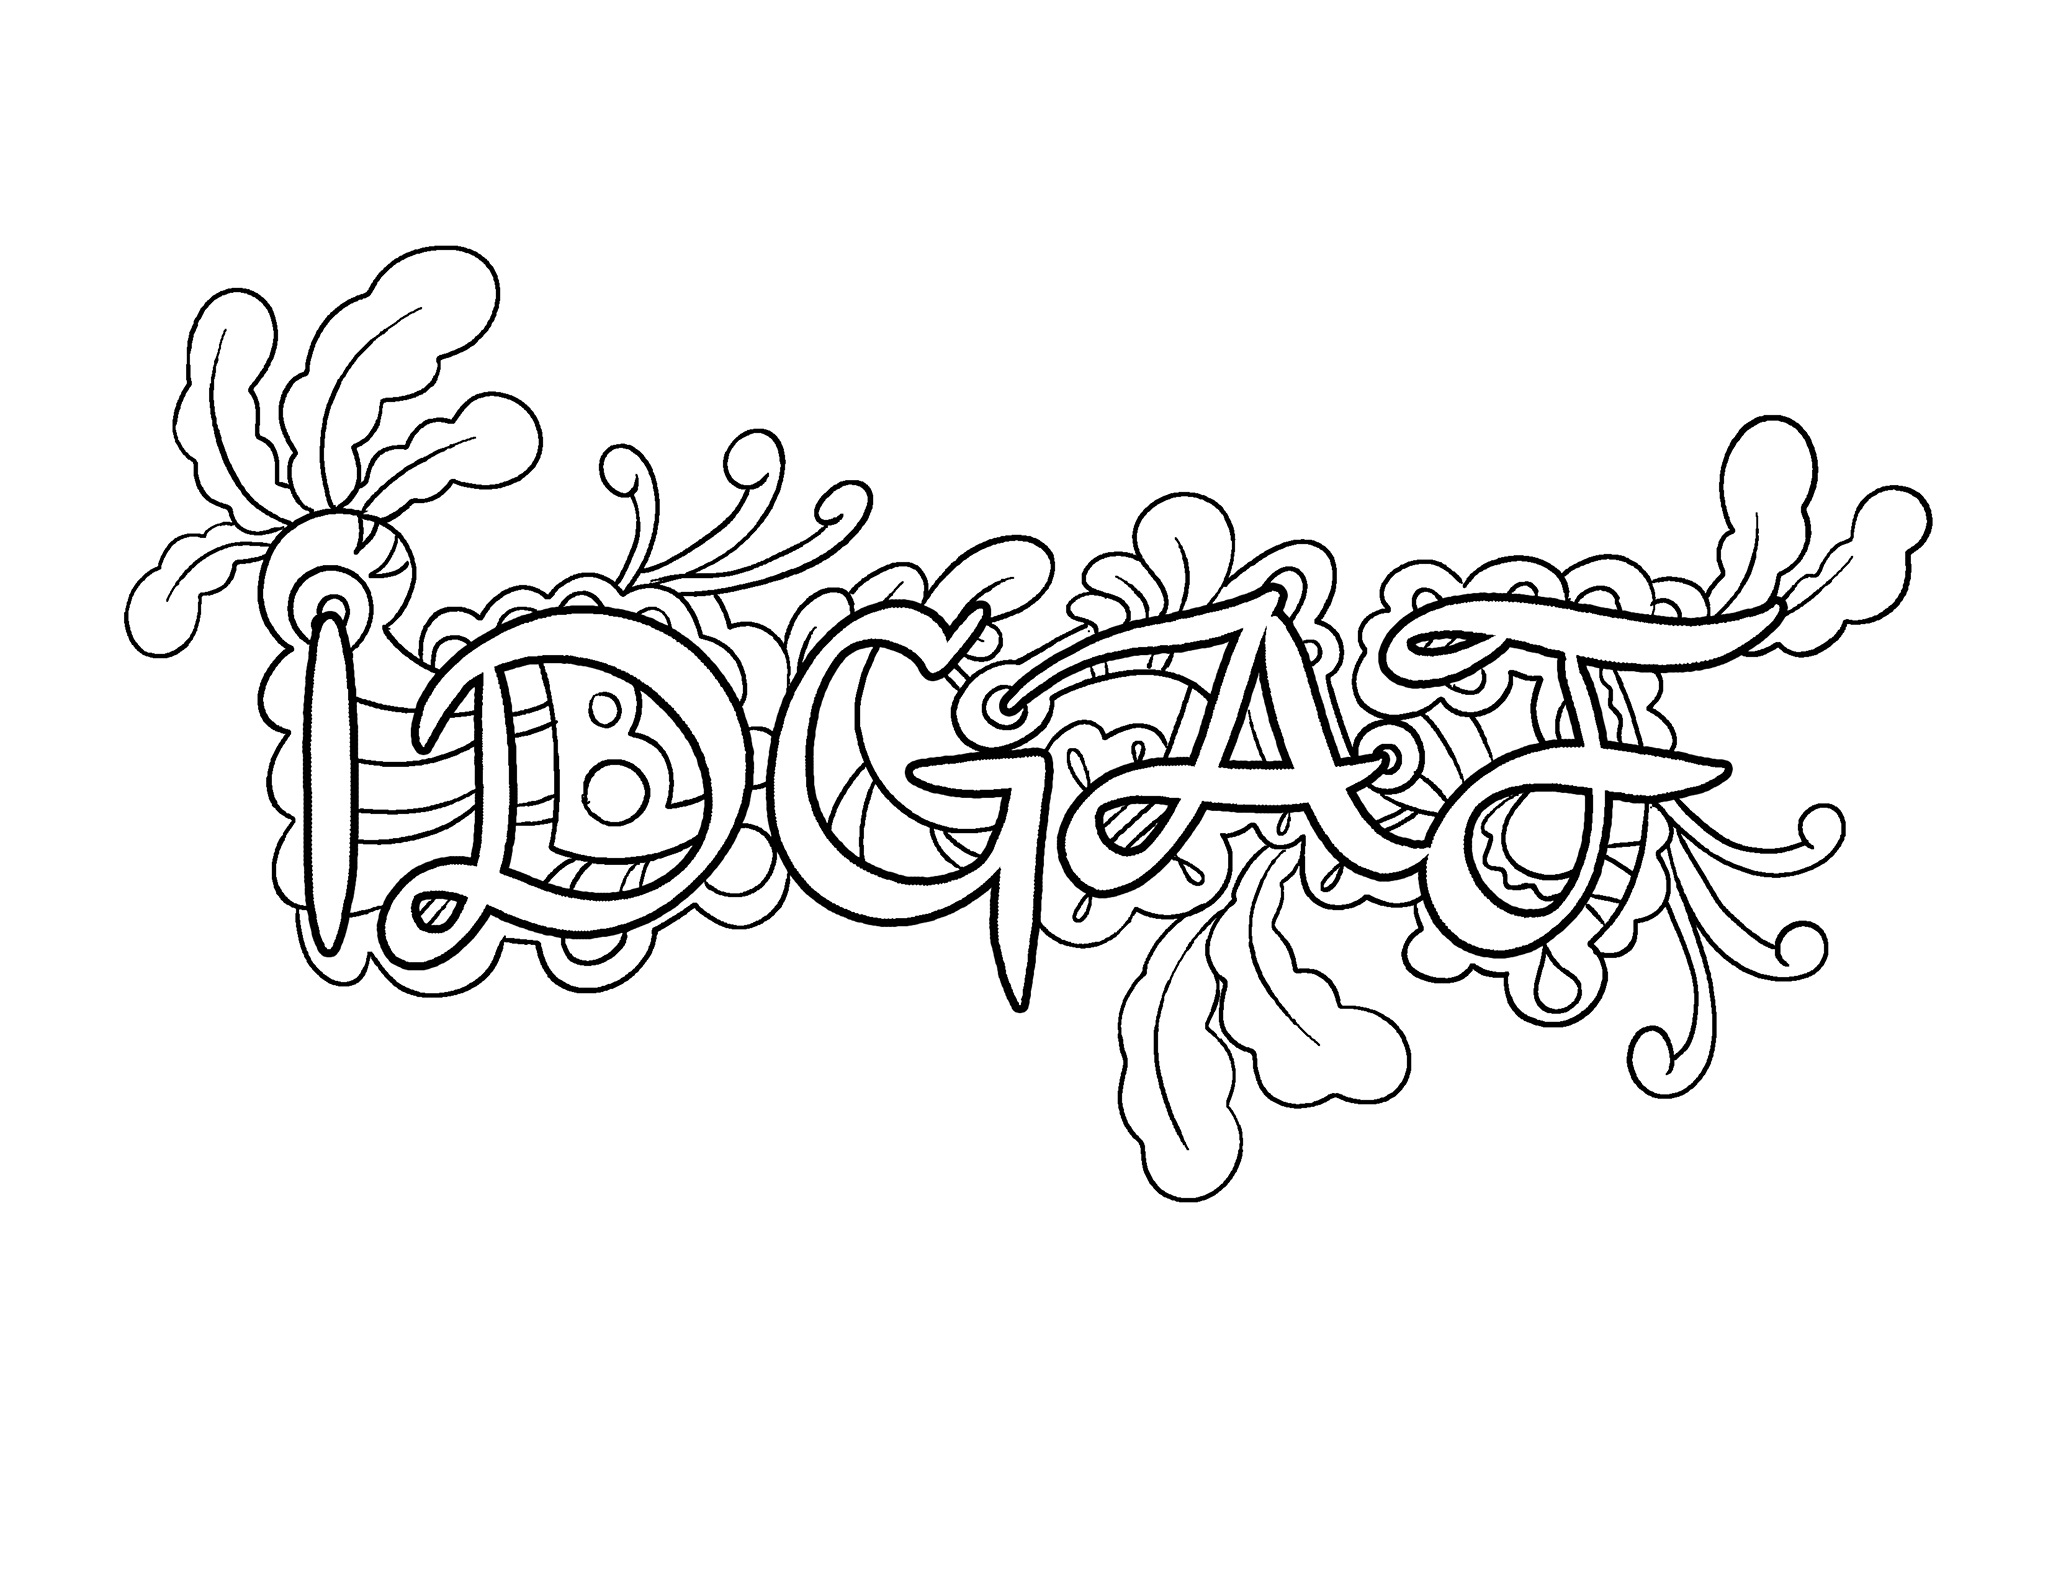 Swear word coloring book volume 1 - Idgaf Coloring Page By Colorful Language Posted With Permission